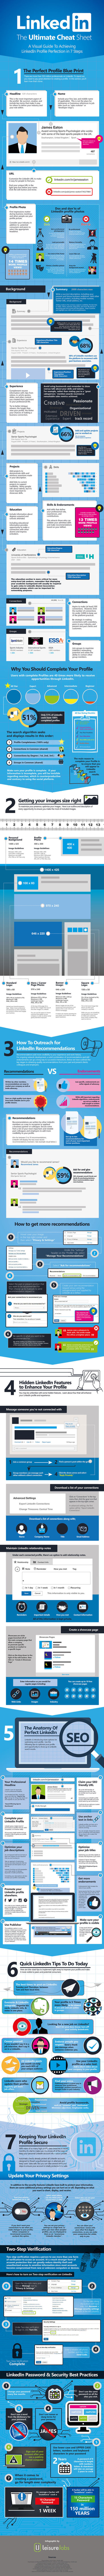 Build Your LinkedIn Profile From Start to Finish With This Massive Visual Guide | Great Infographics | Scoop.it